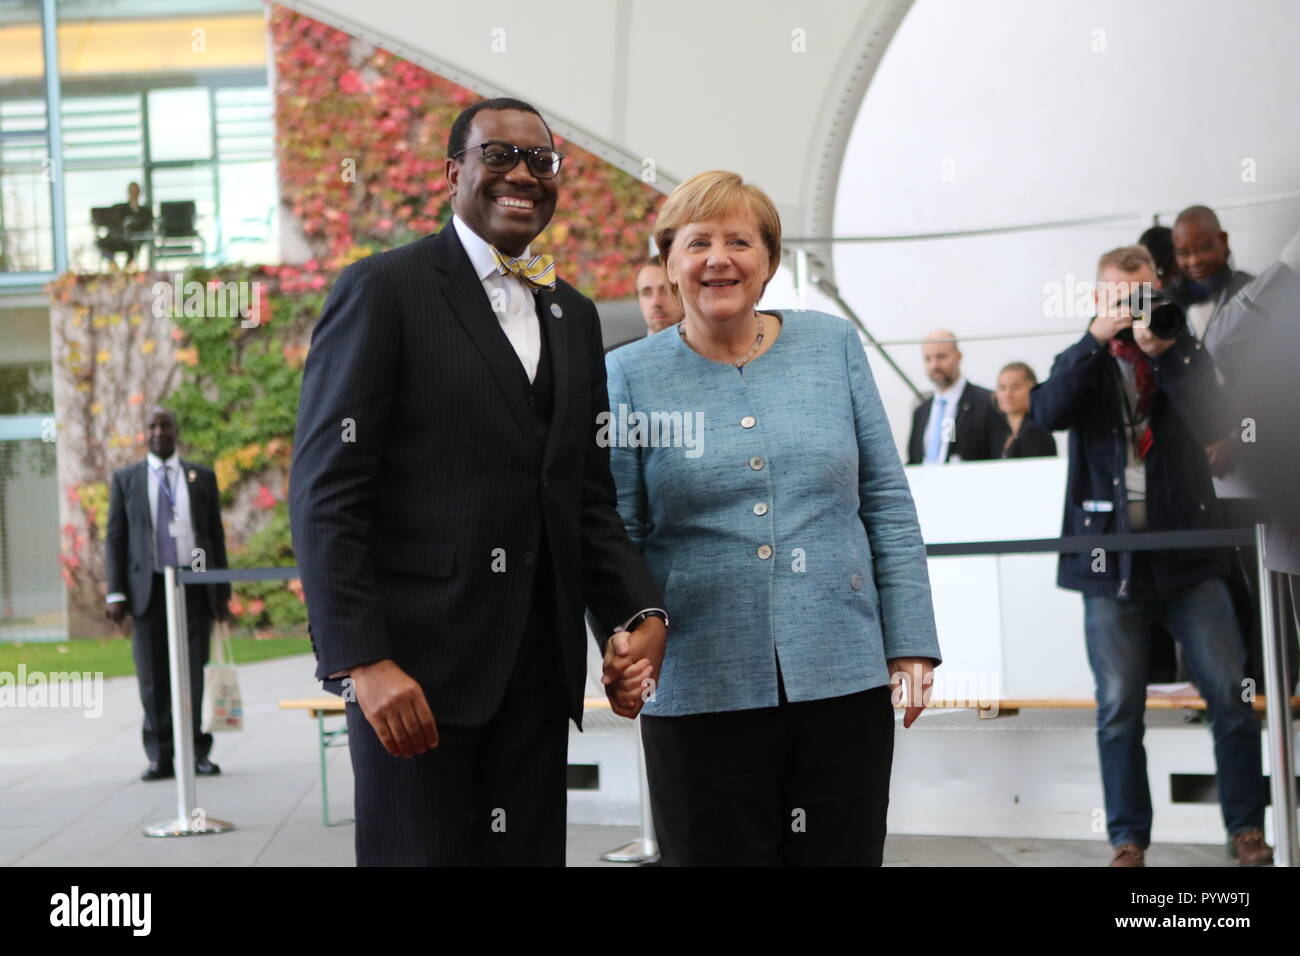 Berlin, Germany. 30th October, 2018. Chancellor Angela Merkel and Akinwumi Aydeji Adesina, African Development Bank at the reception in the courtyard of the Federal Chancellery.The meeting will take place within the framework of Compact with Africa. Credit: SAO Struck/Alamy Live News - Stock Image